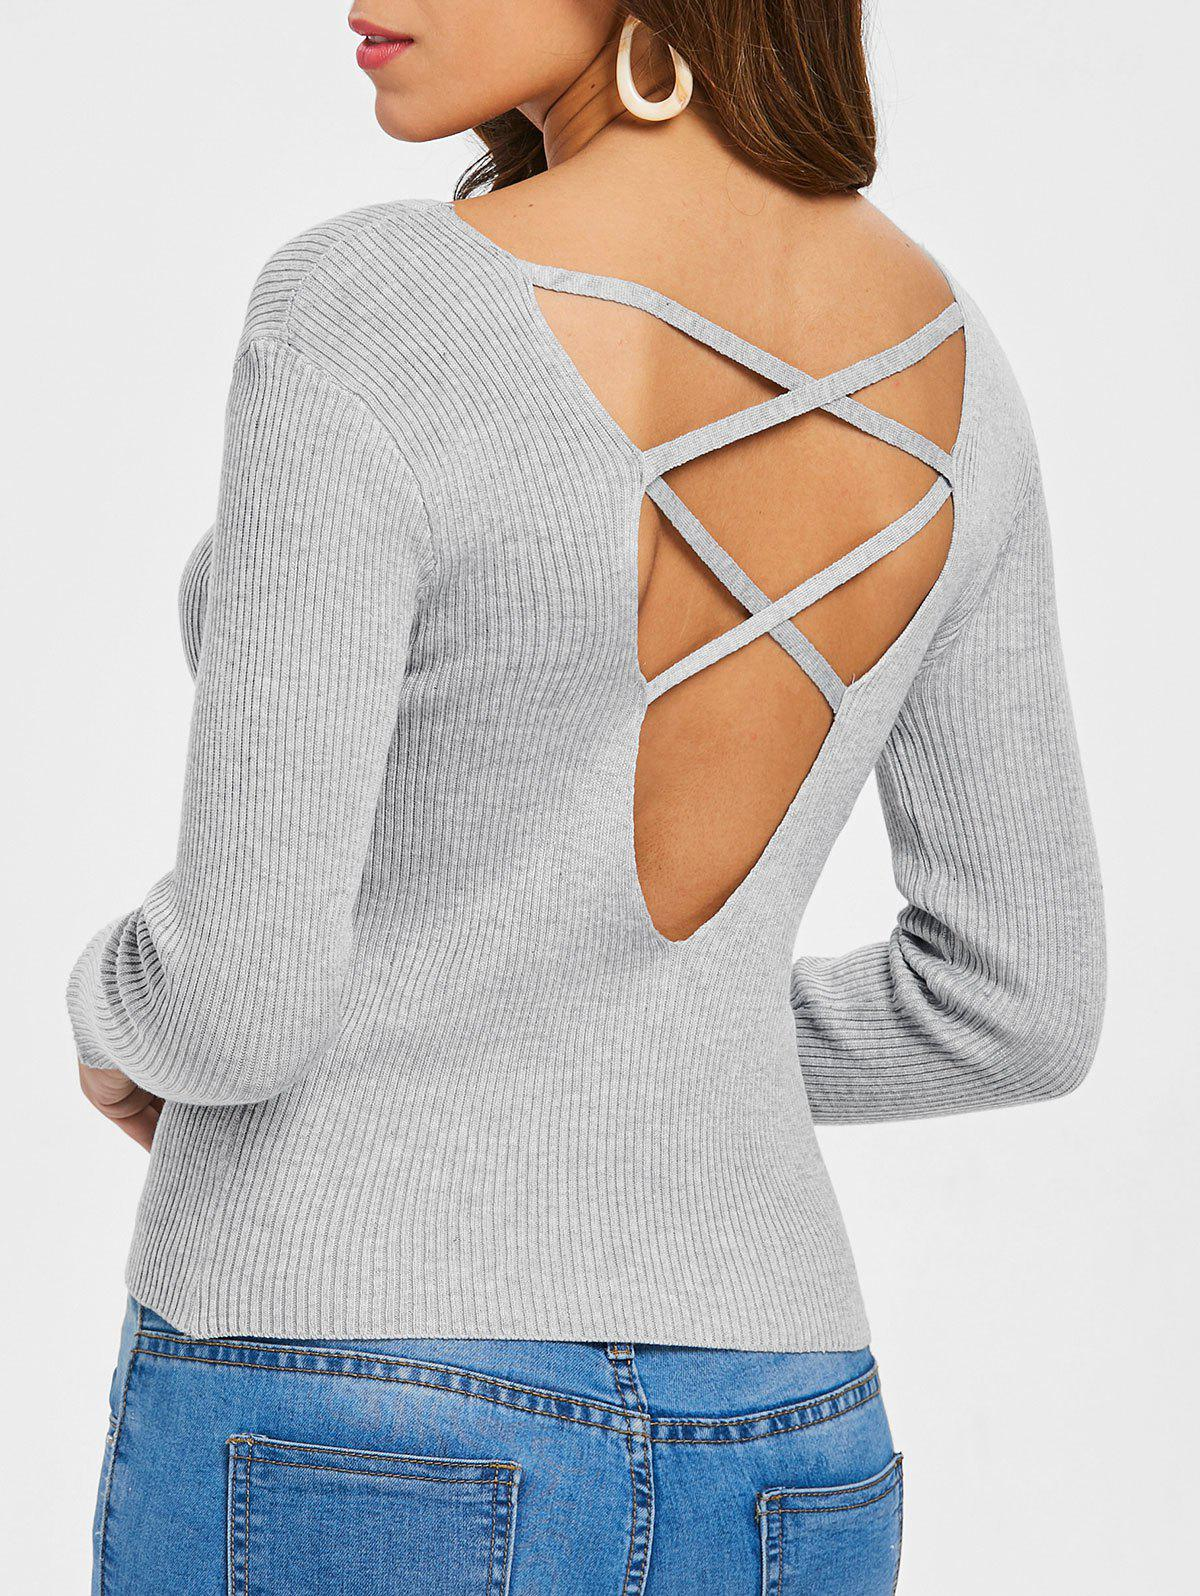 Shops Ribbed Back Criss Cross Sweater